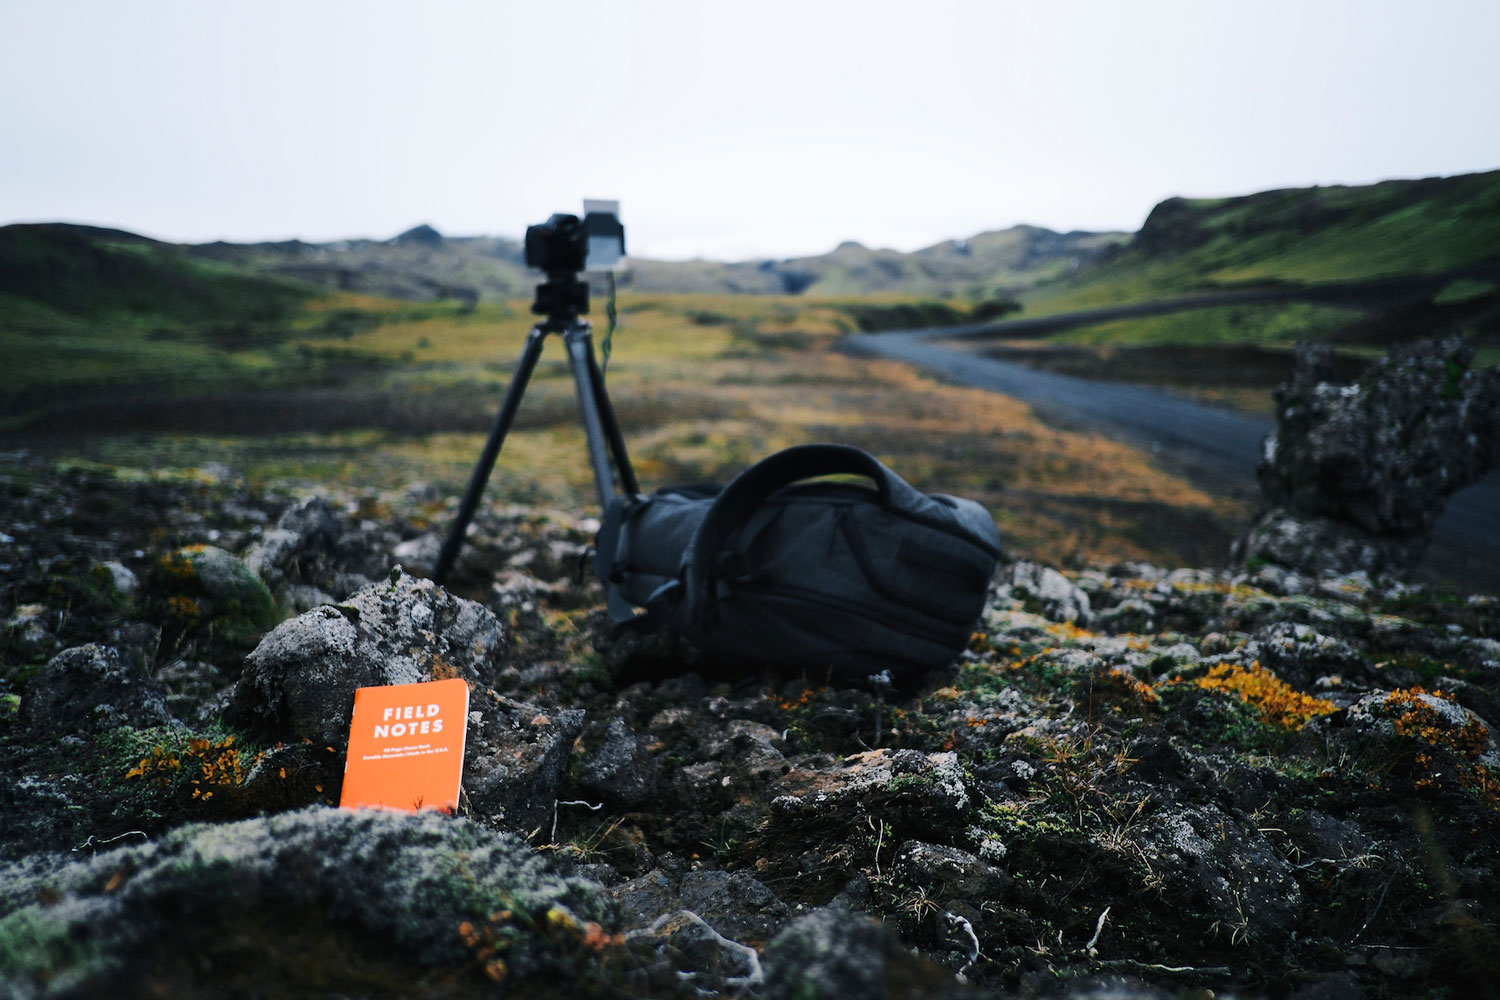 Iceland: Field Notes in Action